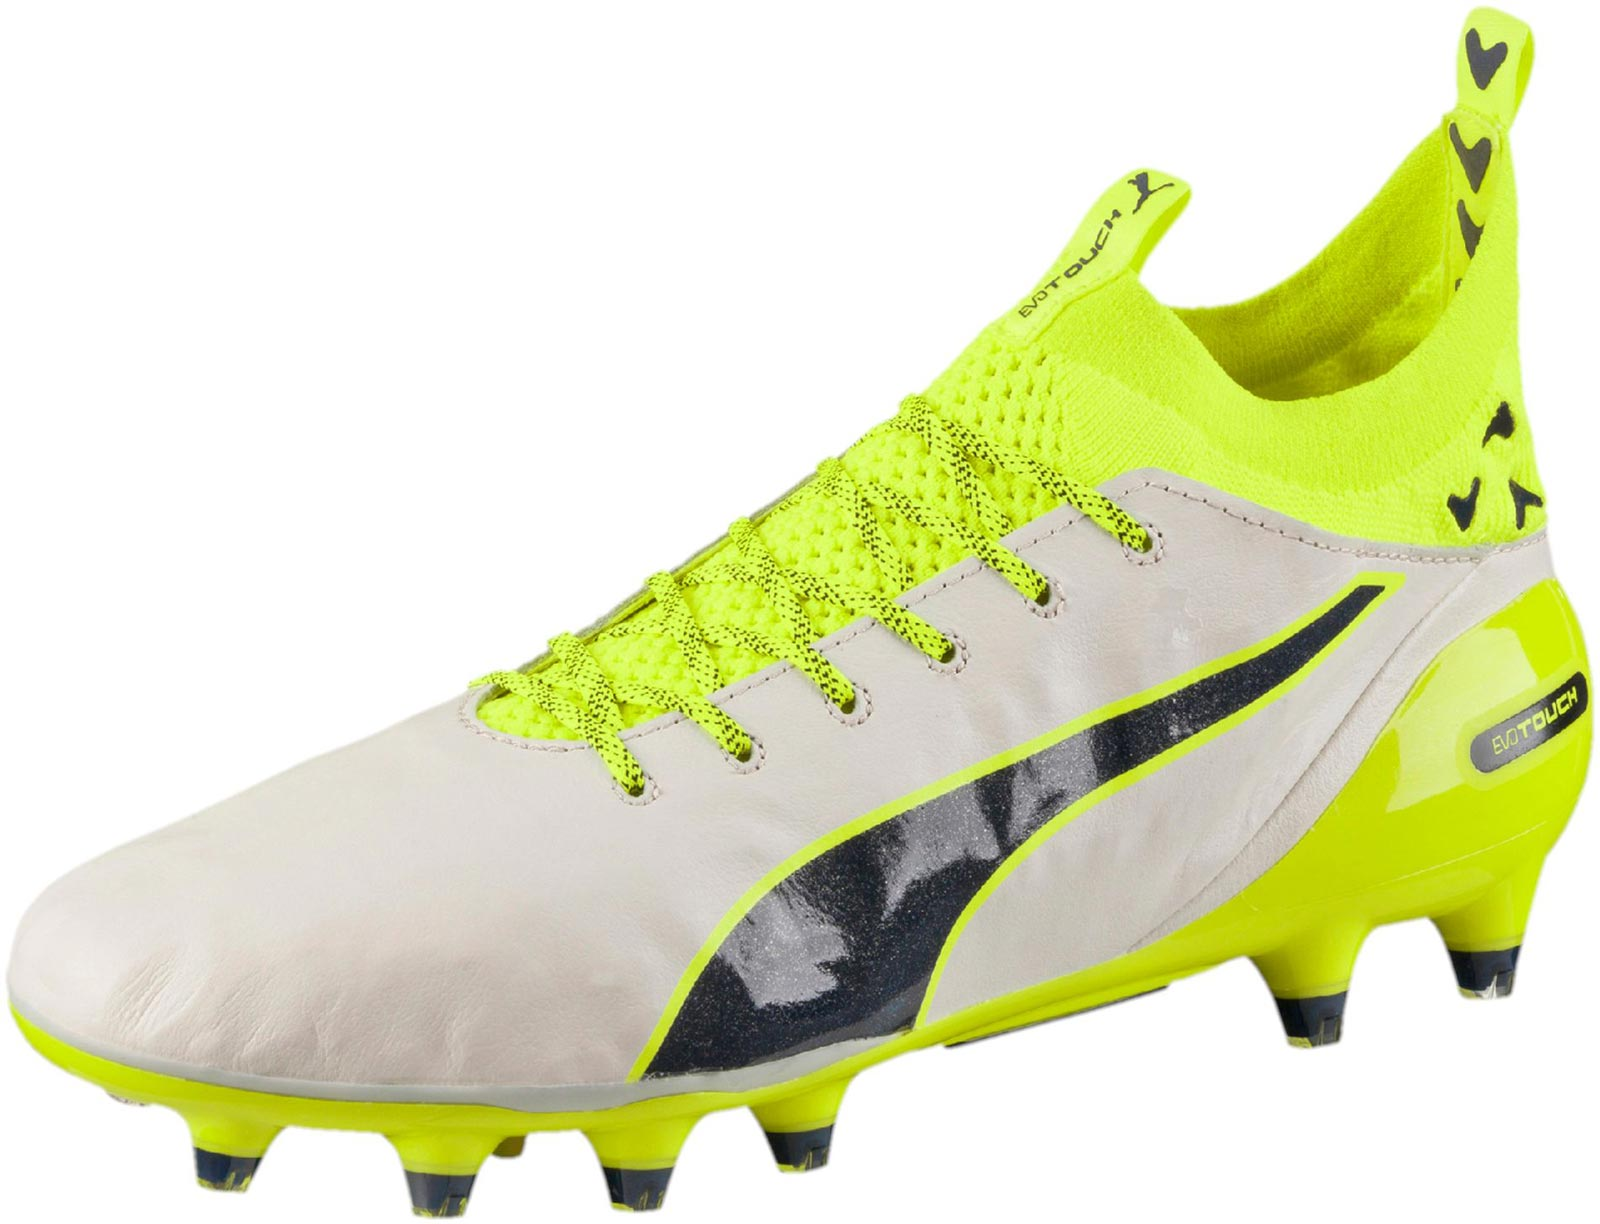 1852733aa975fe This is the first white paint job of the new Puma evoTOUCH Cleats.